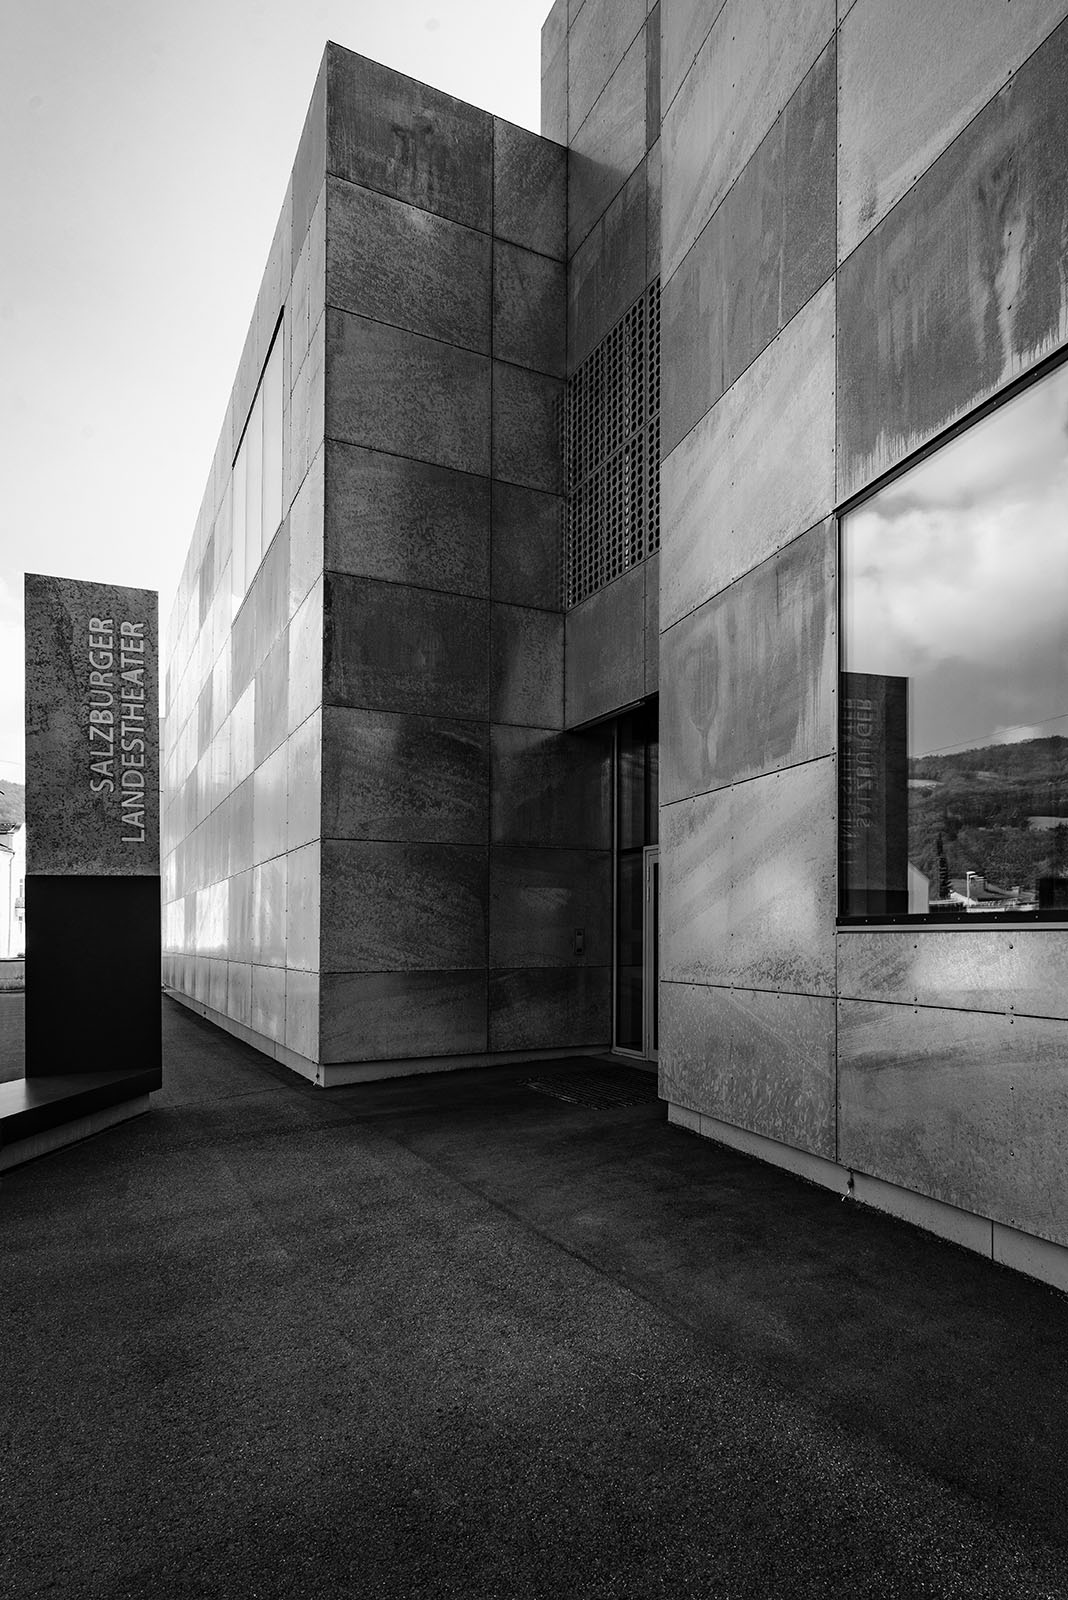 State Theater Rehearsal Center, Salzburg, Austria - Architect: Architekturwerkstatt Zopf - Black & White Fine Art Architecture - Philipp Apler - MONOPHIL